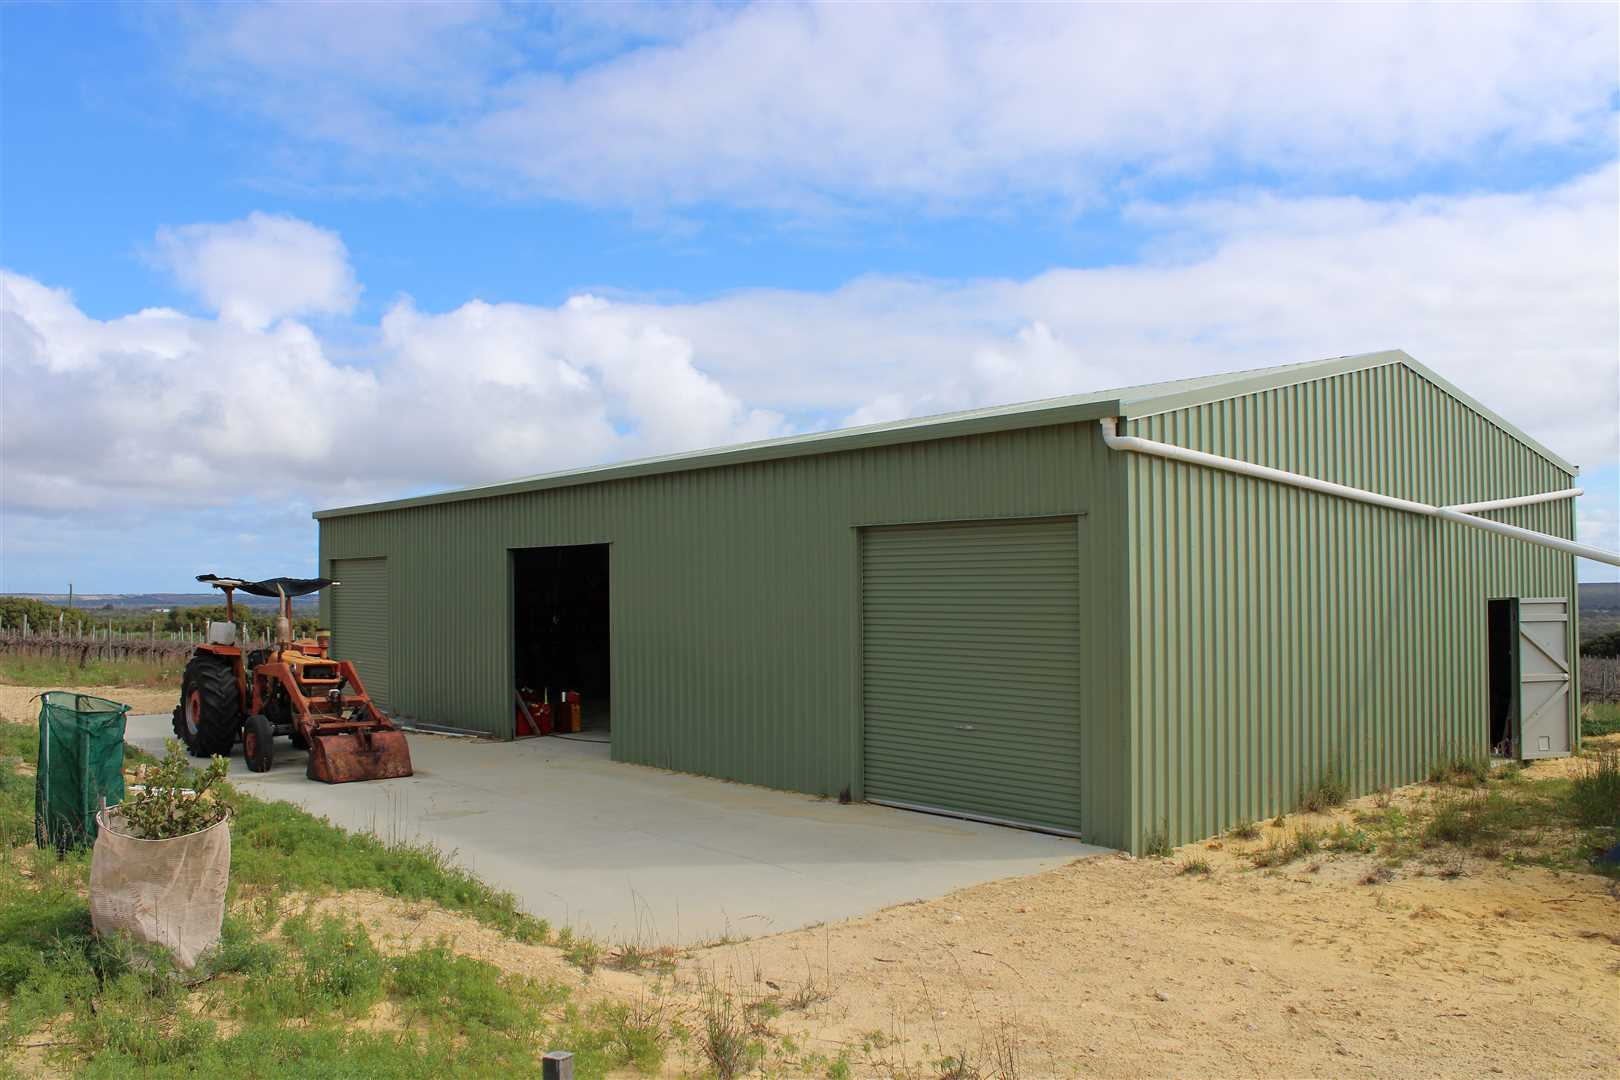 Shed 20x10m approx.